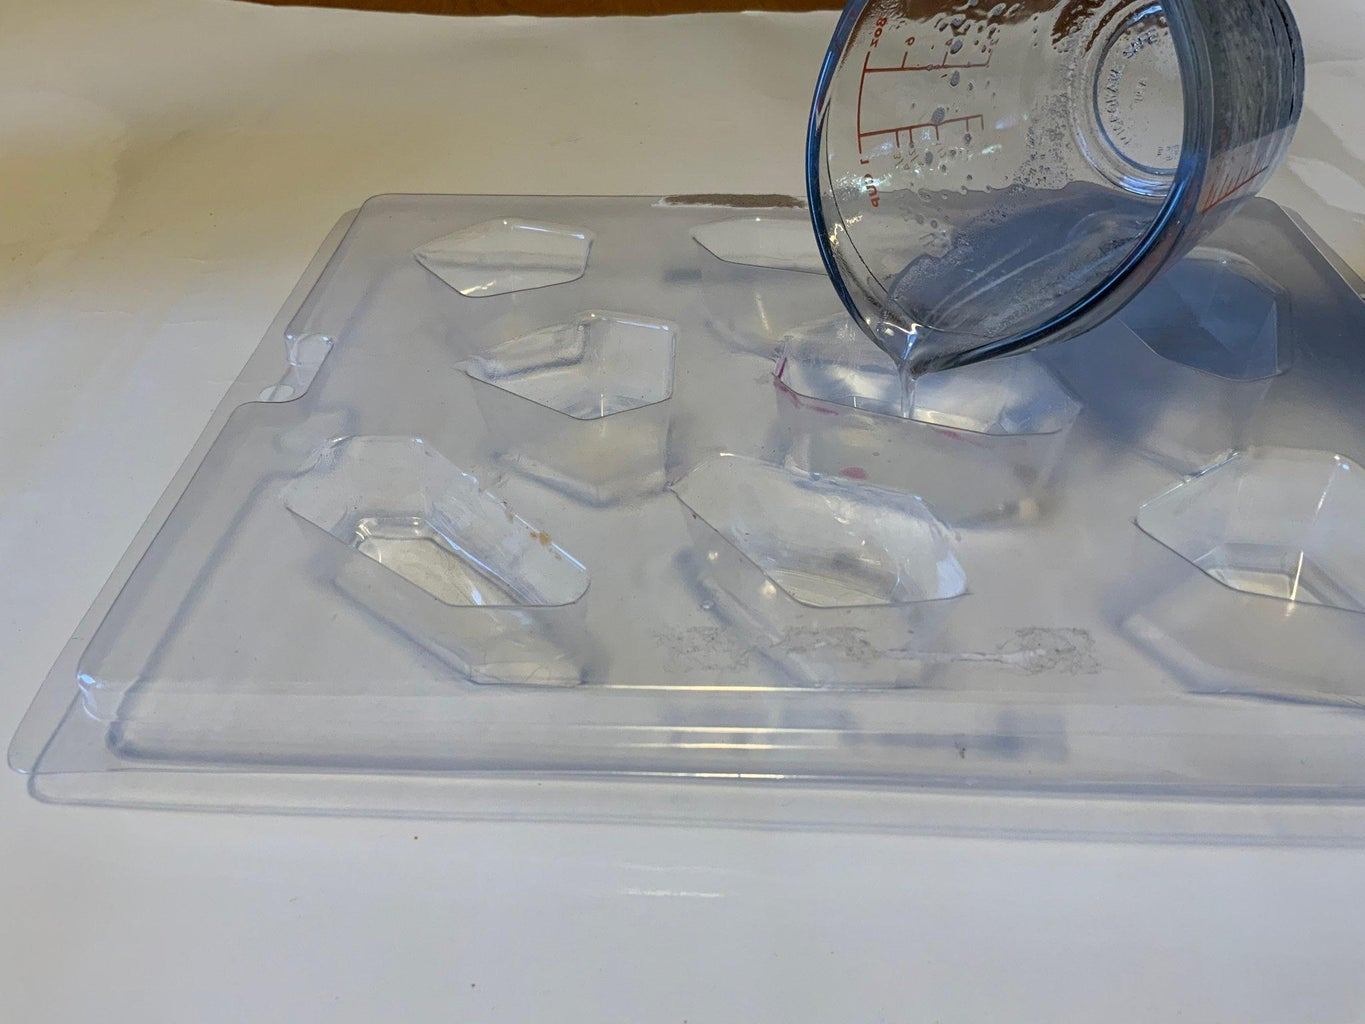 Pouring the Gelatin Into the Soap Molds